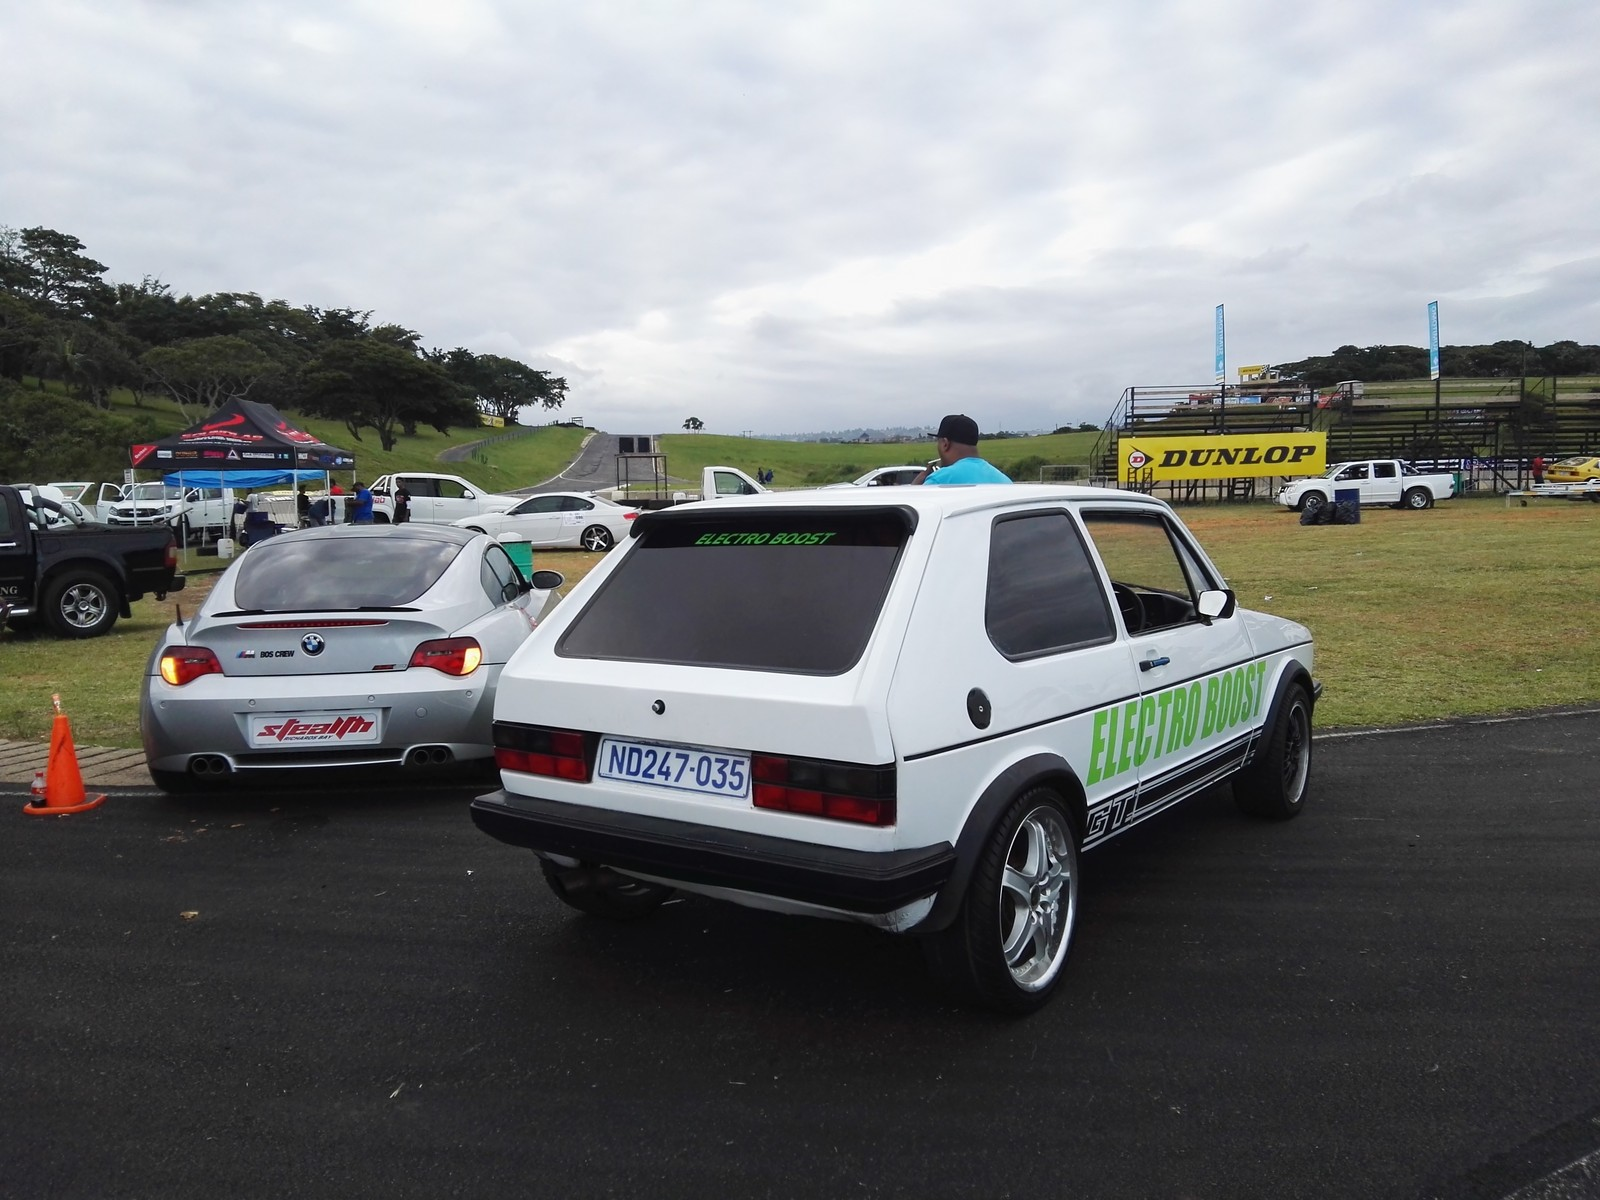 White 1982 Volkswagen Rabbit GT